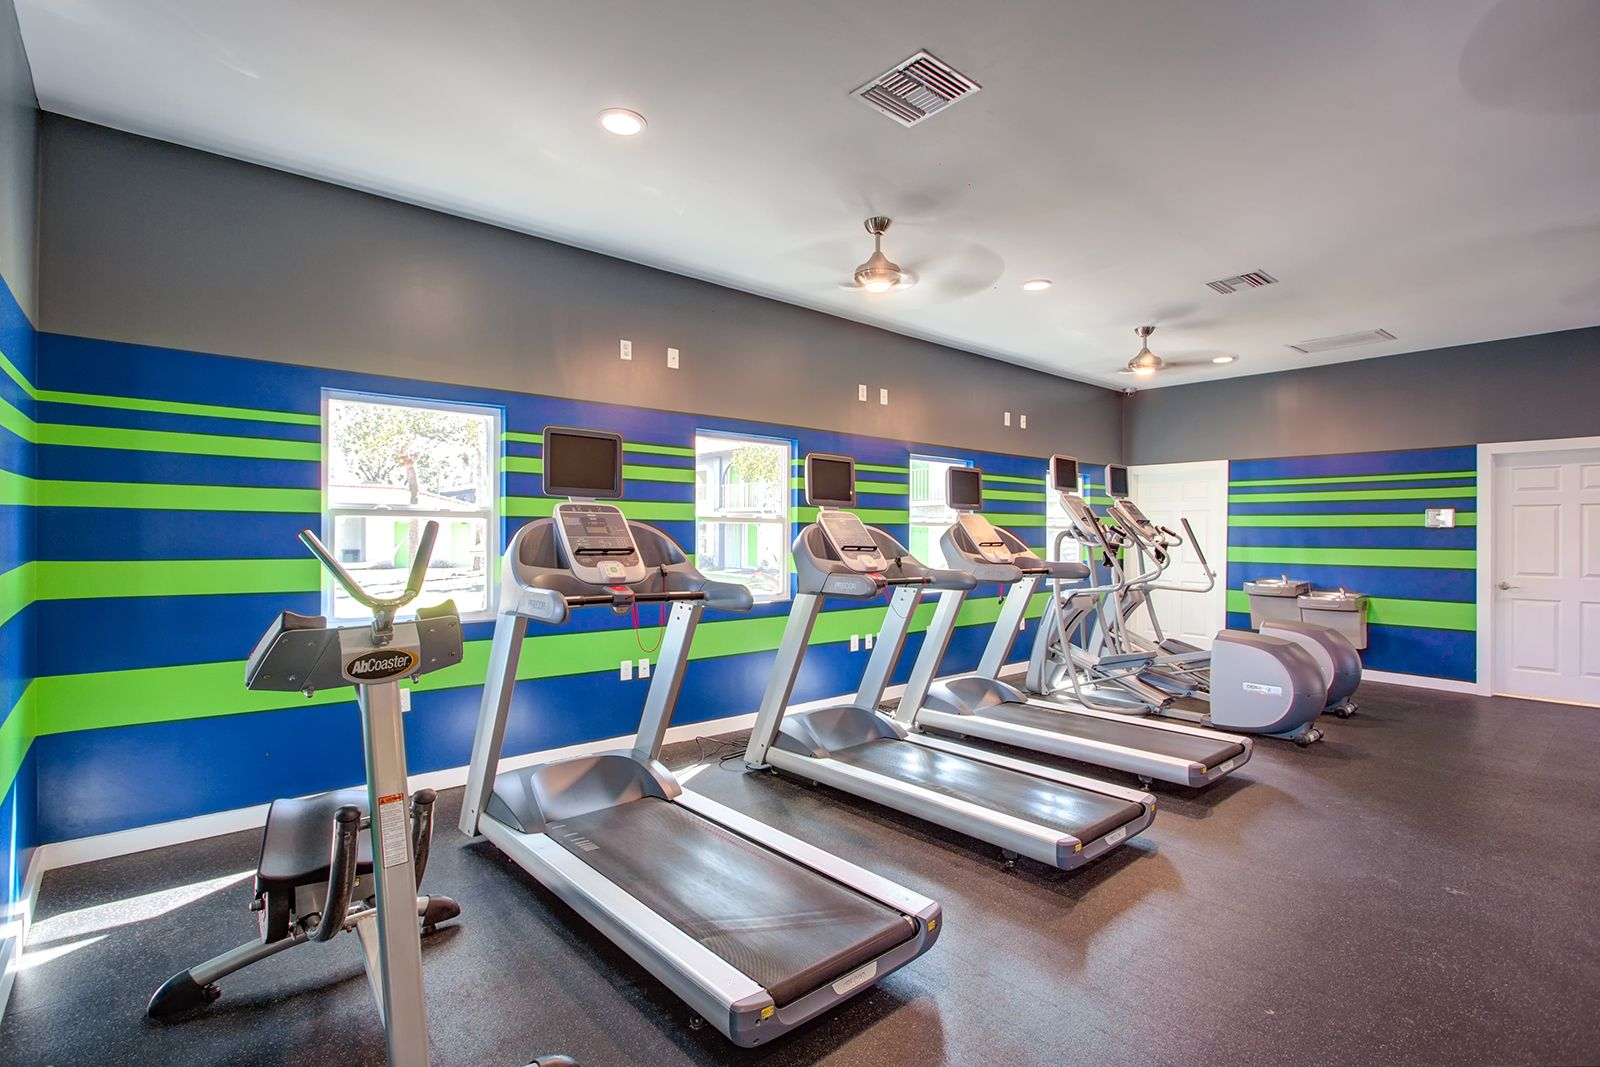 Come get your sweat on in our newly renovated fitness